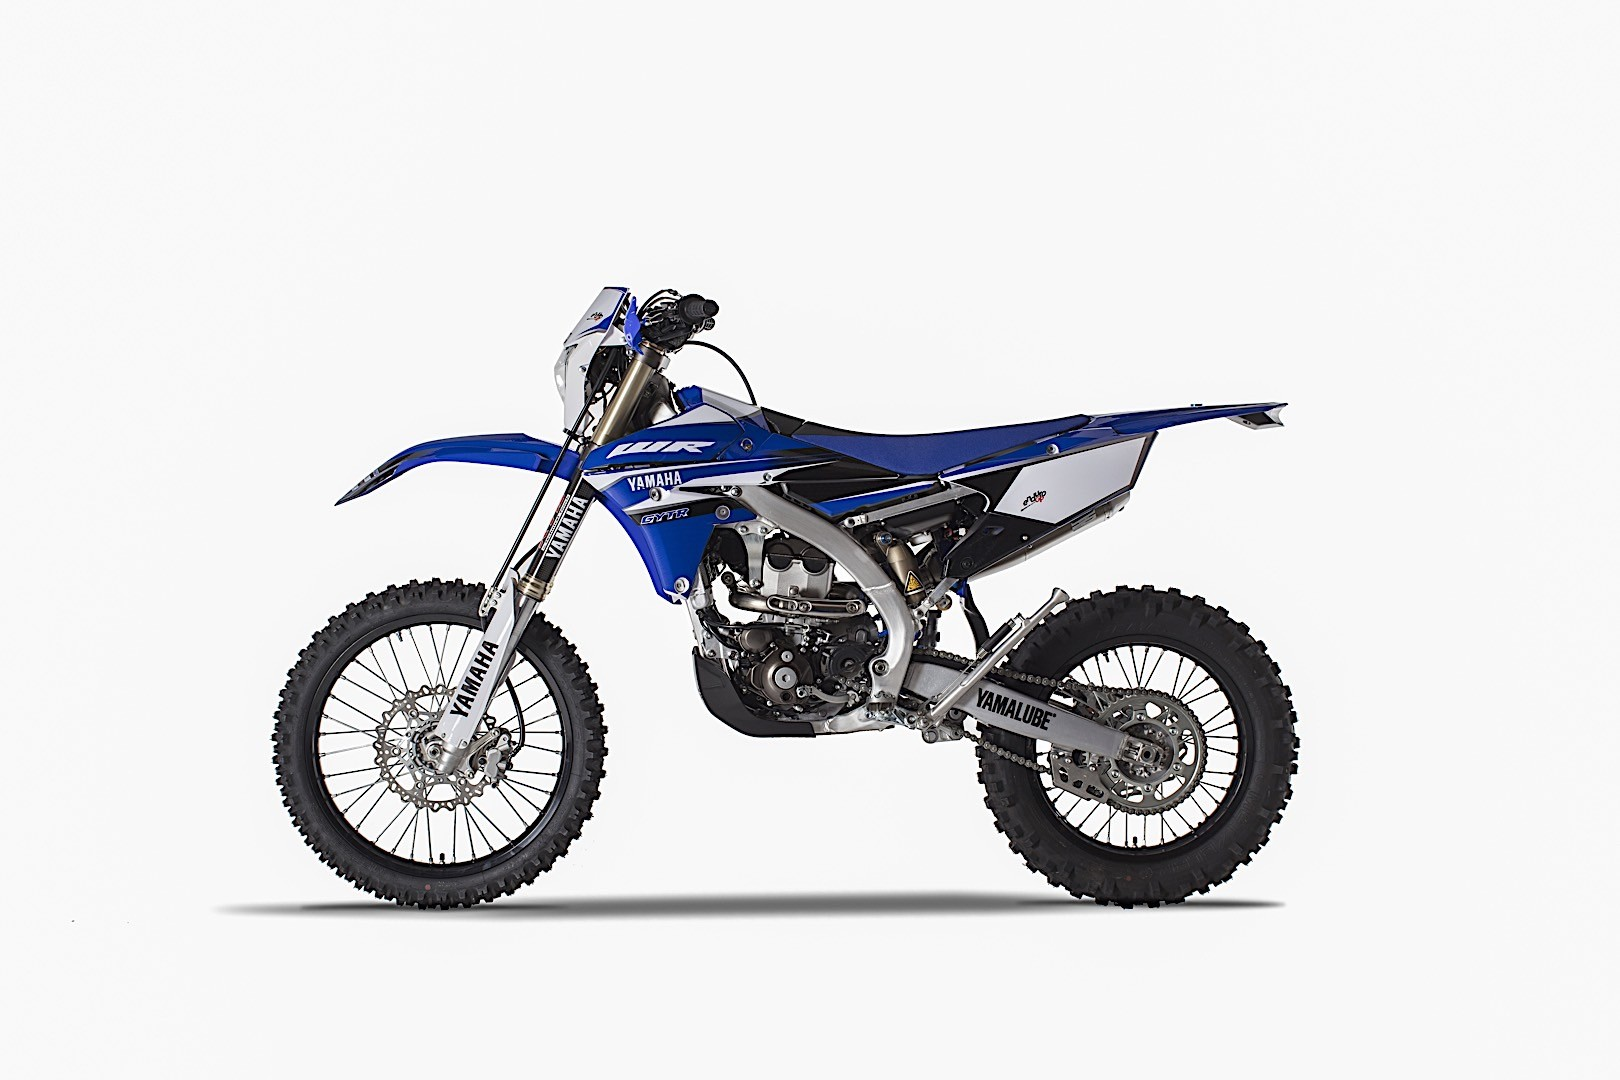 2018 yamaha wr450f and wr250f endorogp special editions for Yamaha wr 250 2017